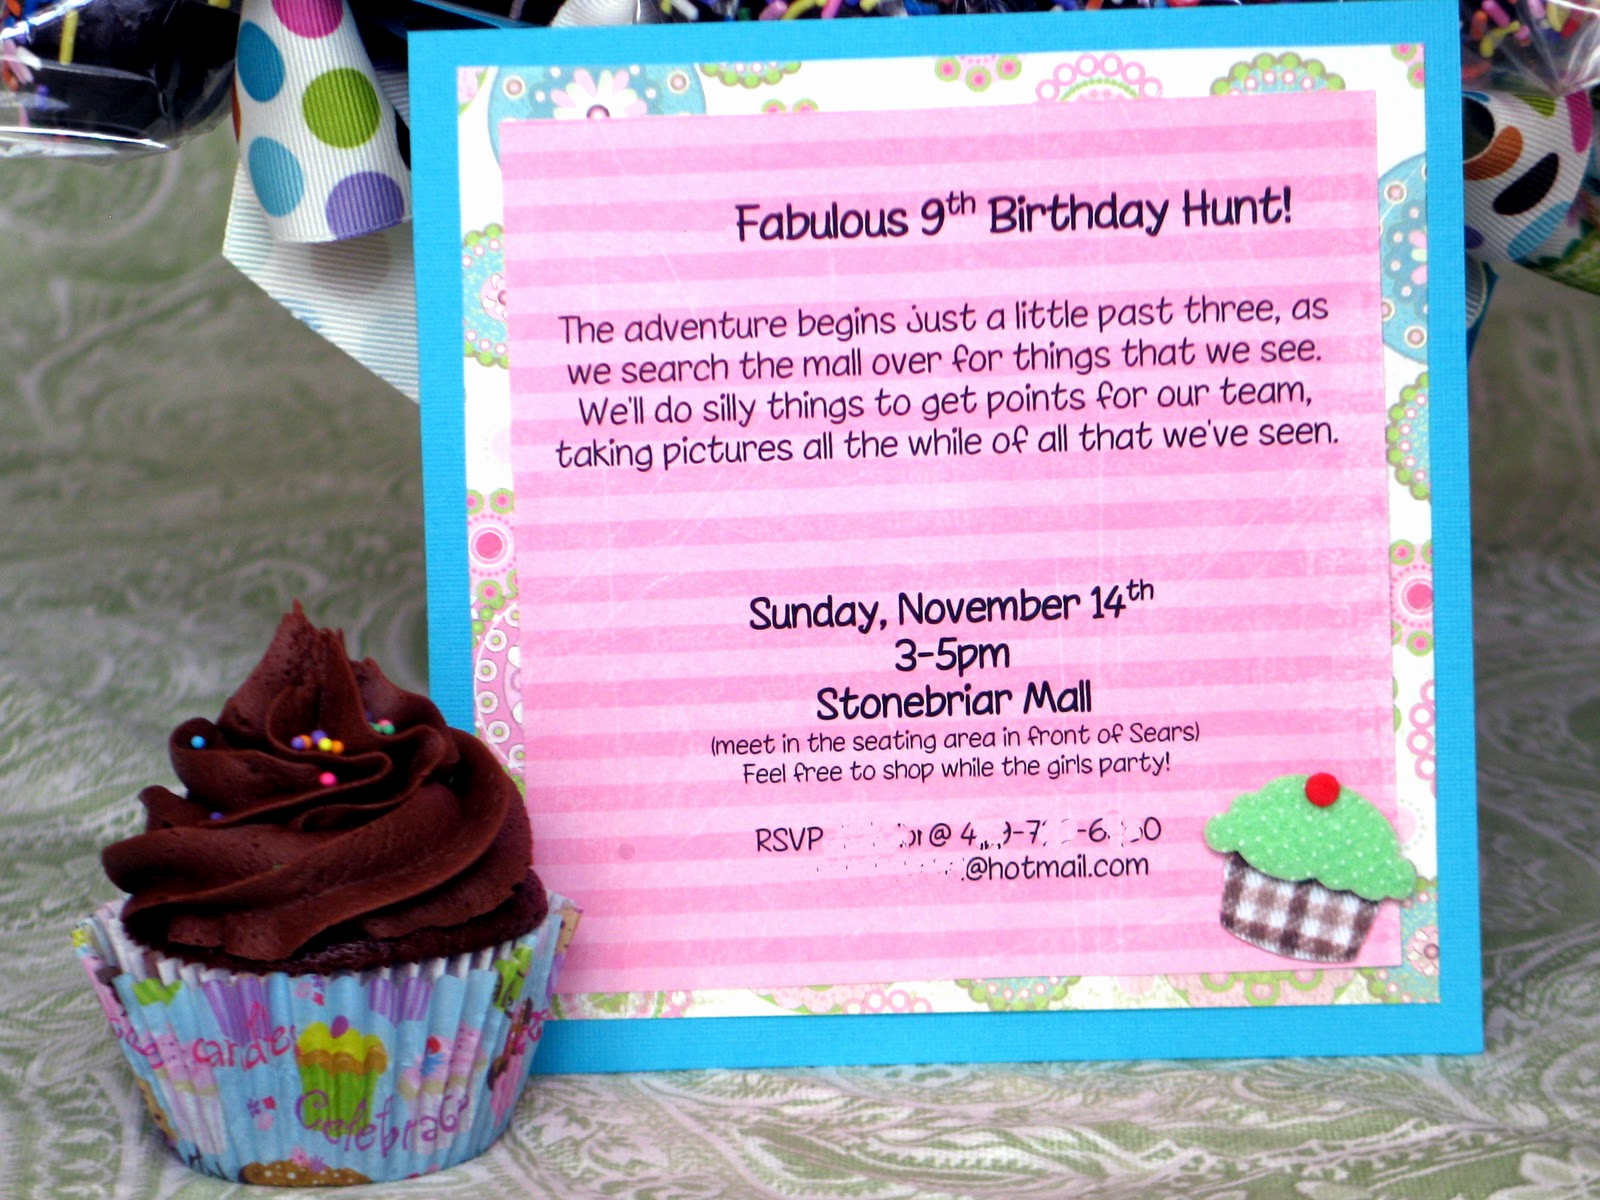 Mall Scavenger Hunt Invitation Best Of the Blackberry Vine Mall Scavenger Hunt Birthday Party